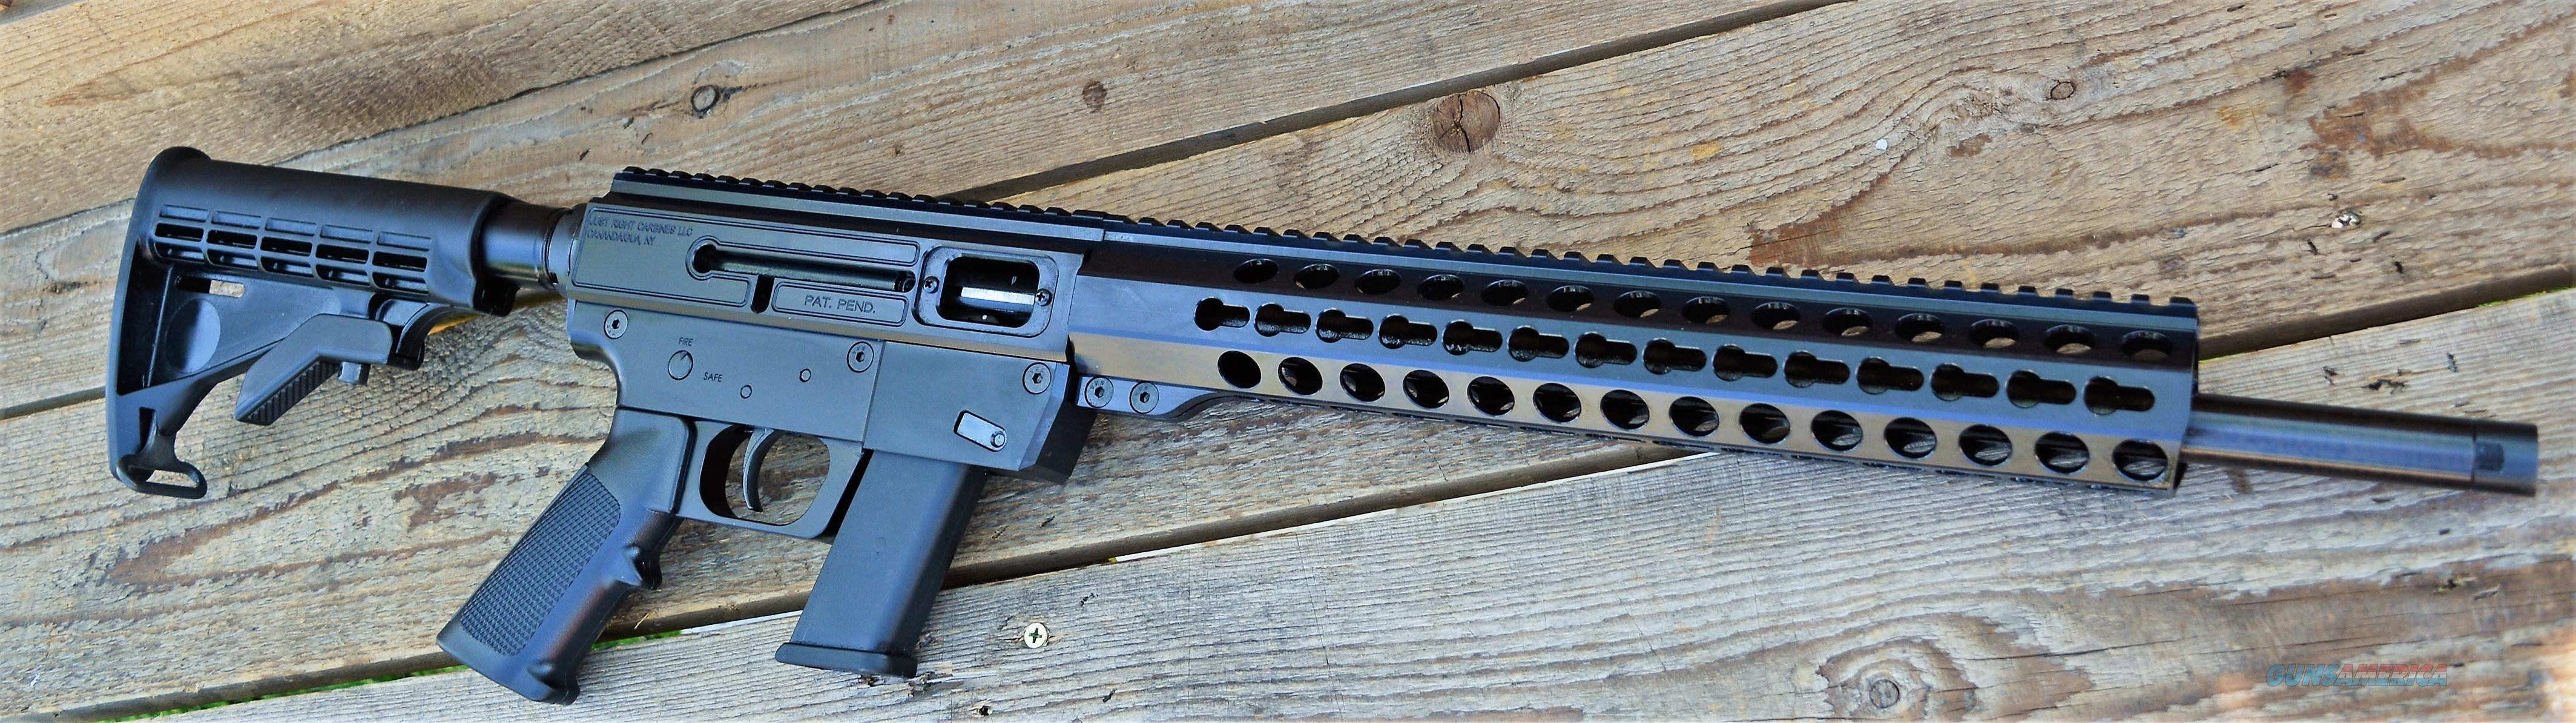 $65 Easy Pay Just Right Compact Carbine .40 S&W  use same box of ammo for revolver  Pistol collapsible stock  Takedown 100% American completely ambidextrous left or right hand GLOCK Magazine Compatible round JRC40G3TBBL JRC Gen 3 Picatinny   Guns > Rifles > O Misc Rifles